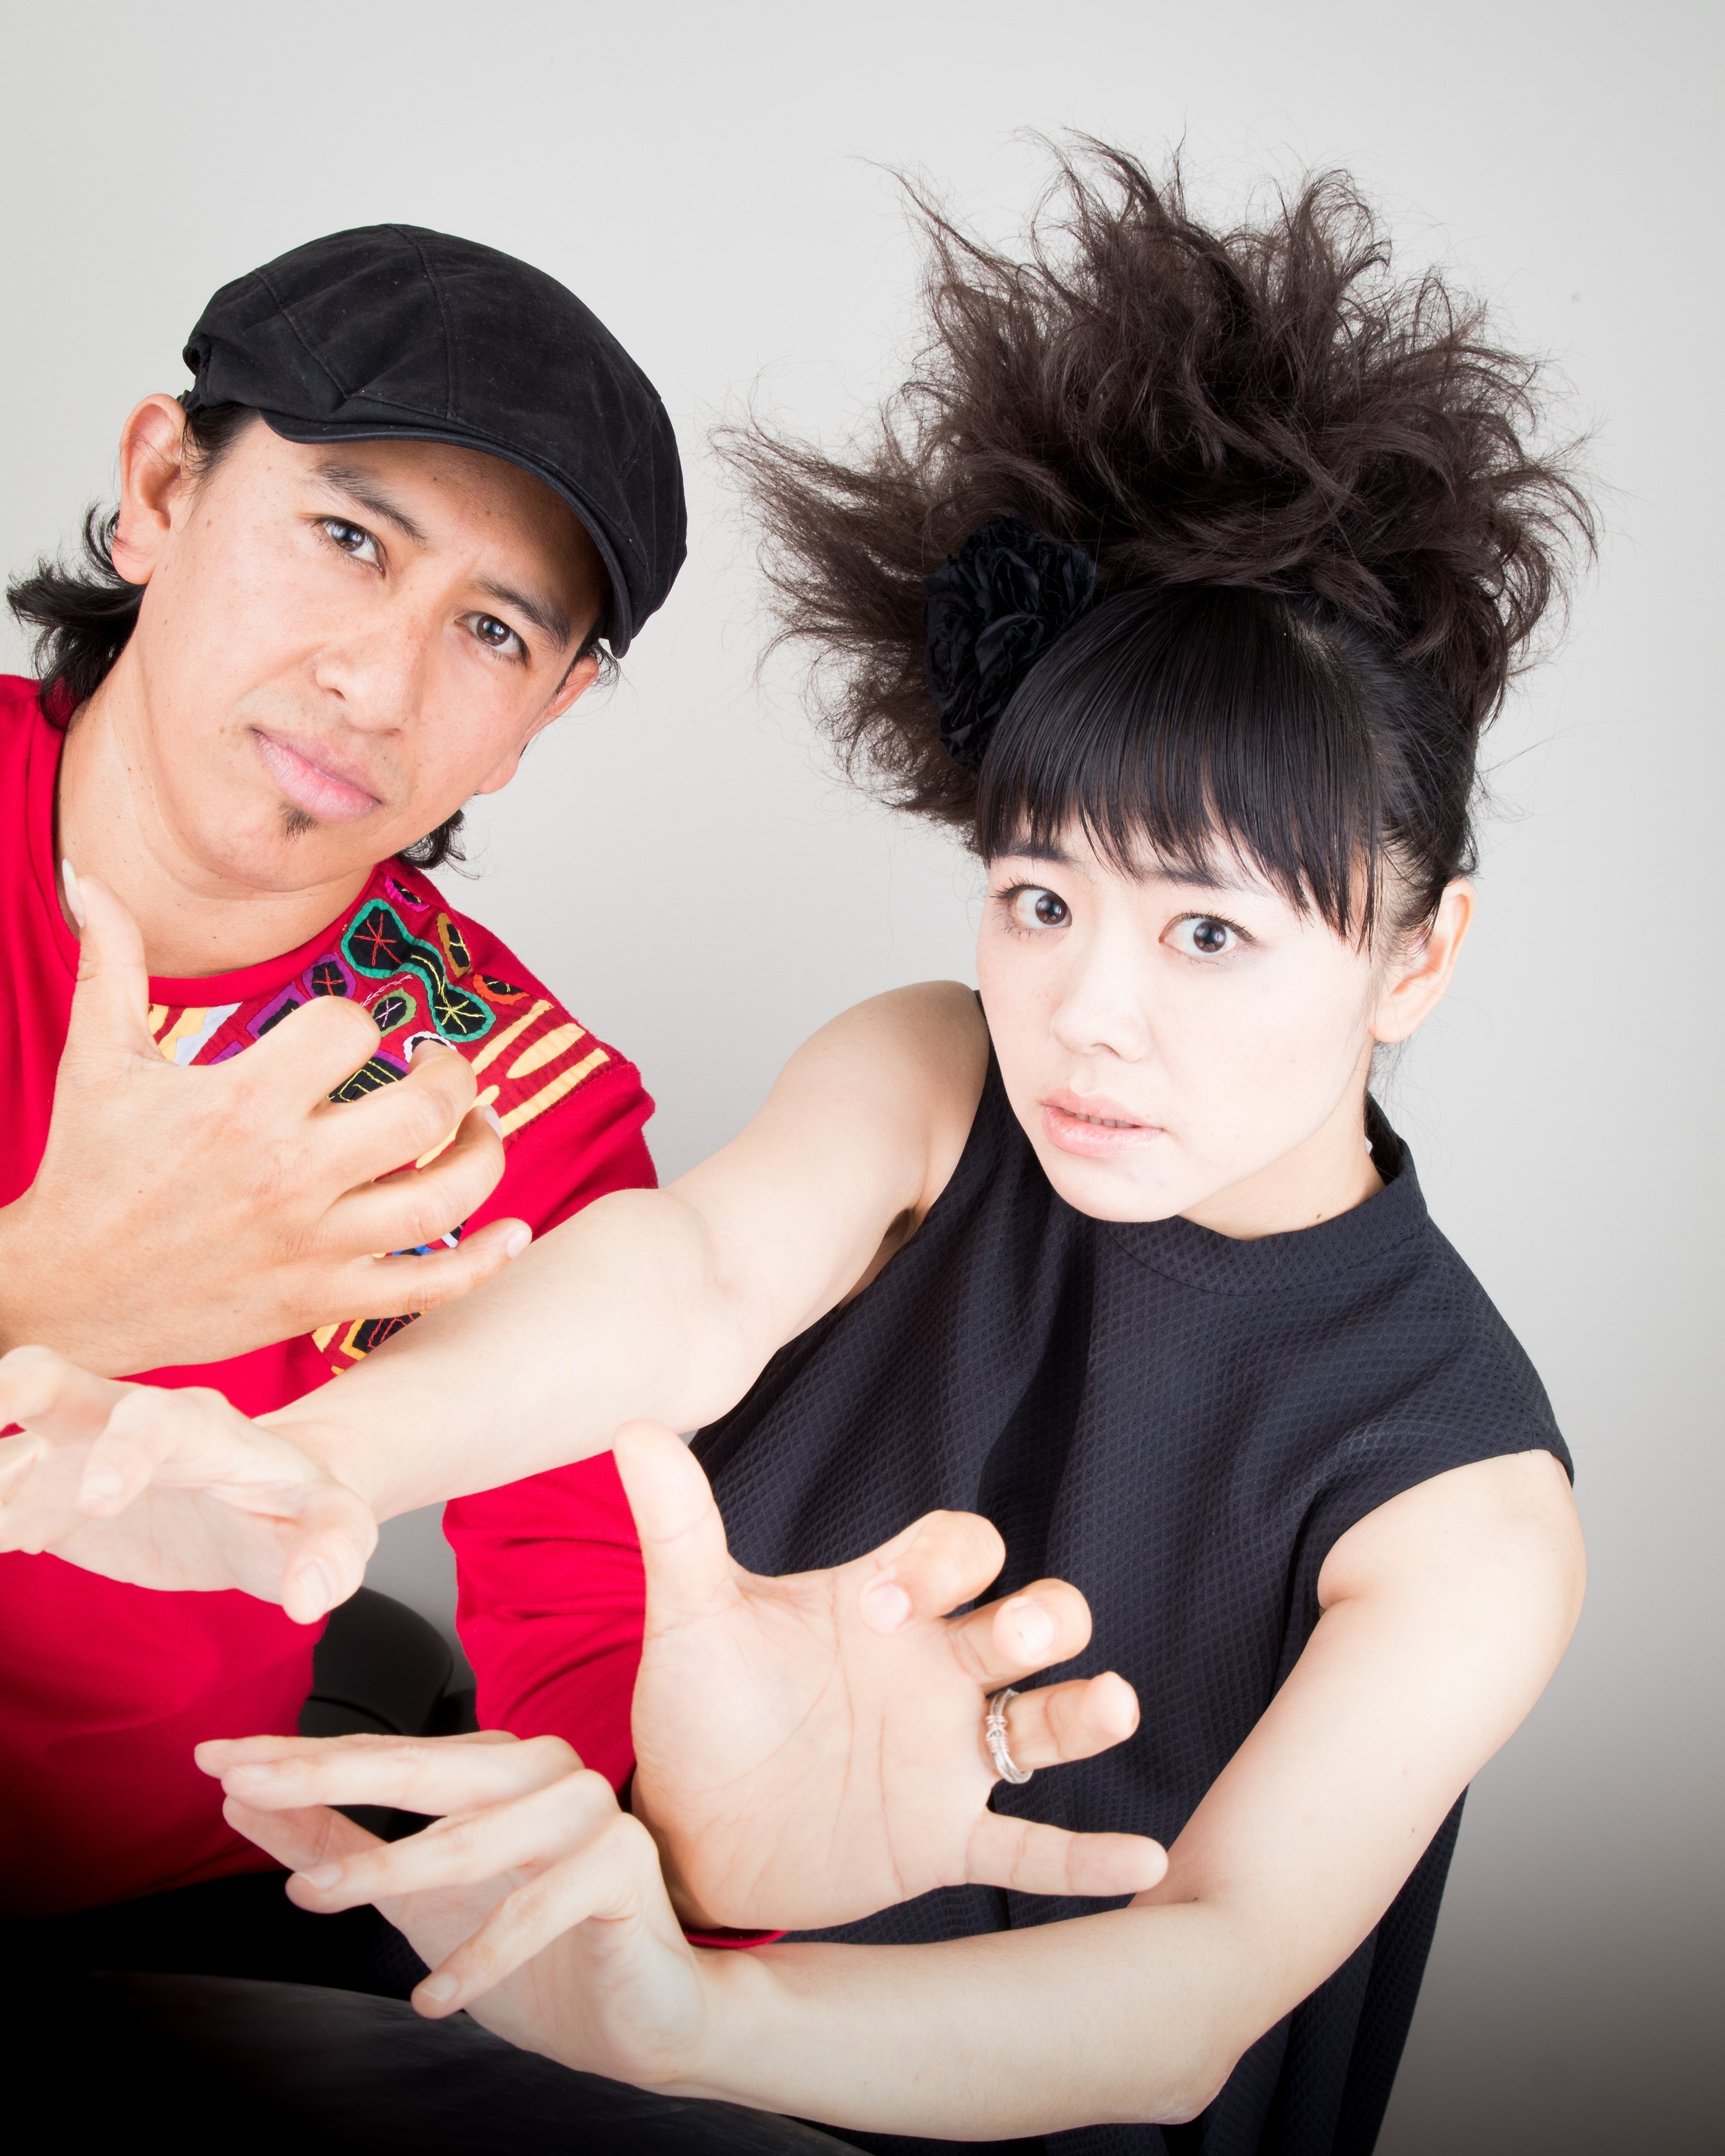 0161 Hiromi & Edmar Promo Publicity Portraits '17 ©2017 Juan Patino Photography Retouched Hi-Resolution Finals MON Jan 23 1st Deliv.jpg